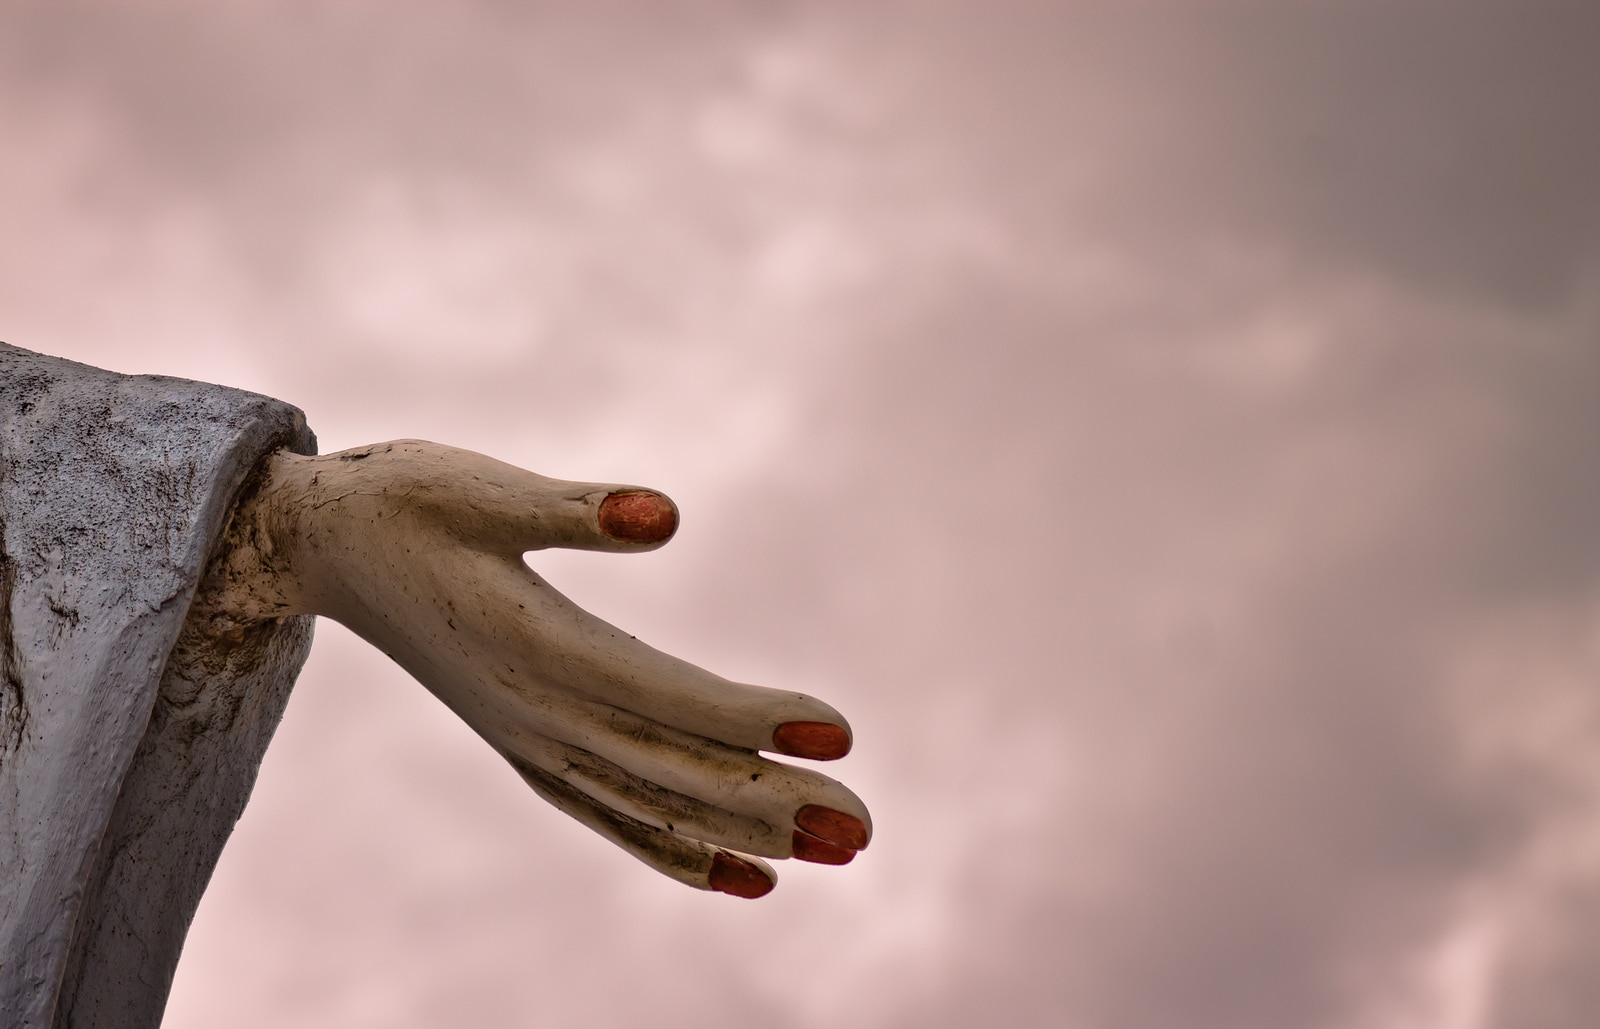 Hand of the statue of Iemanja shot againt cloudy sky